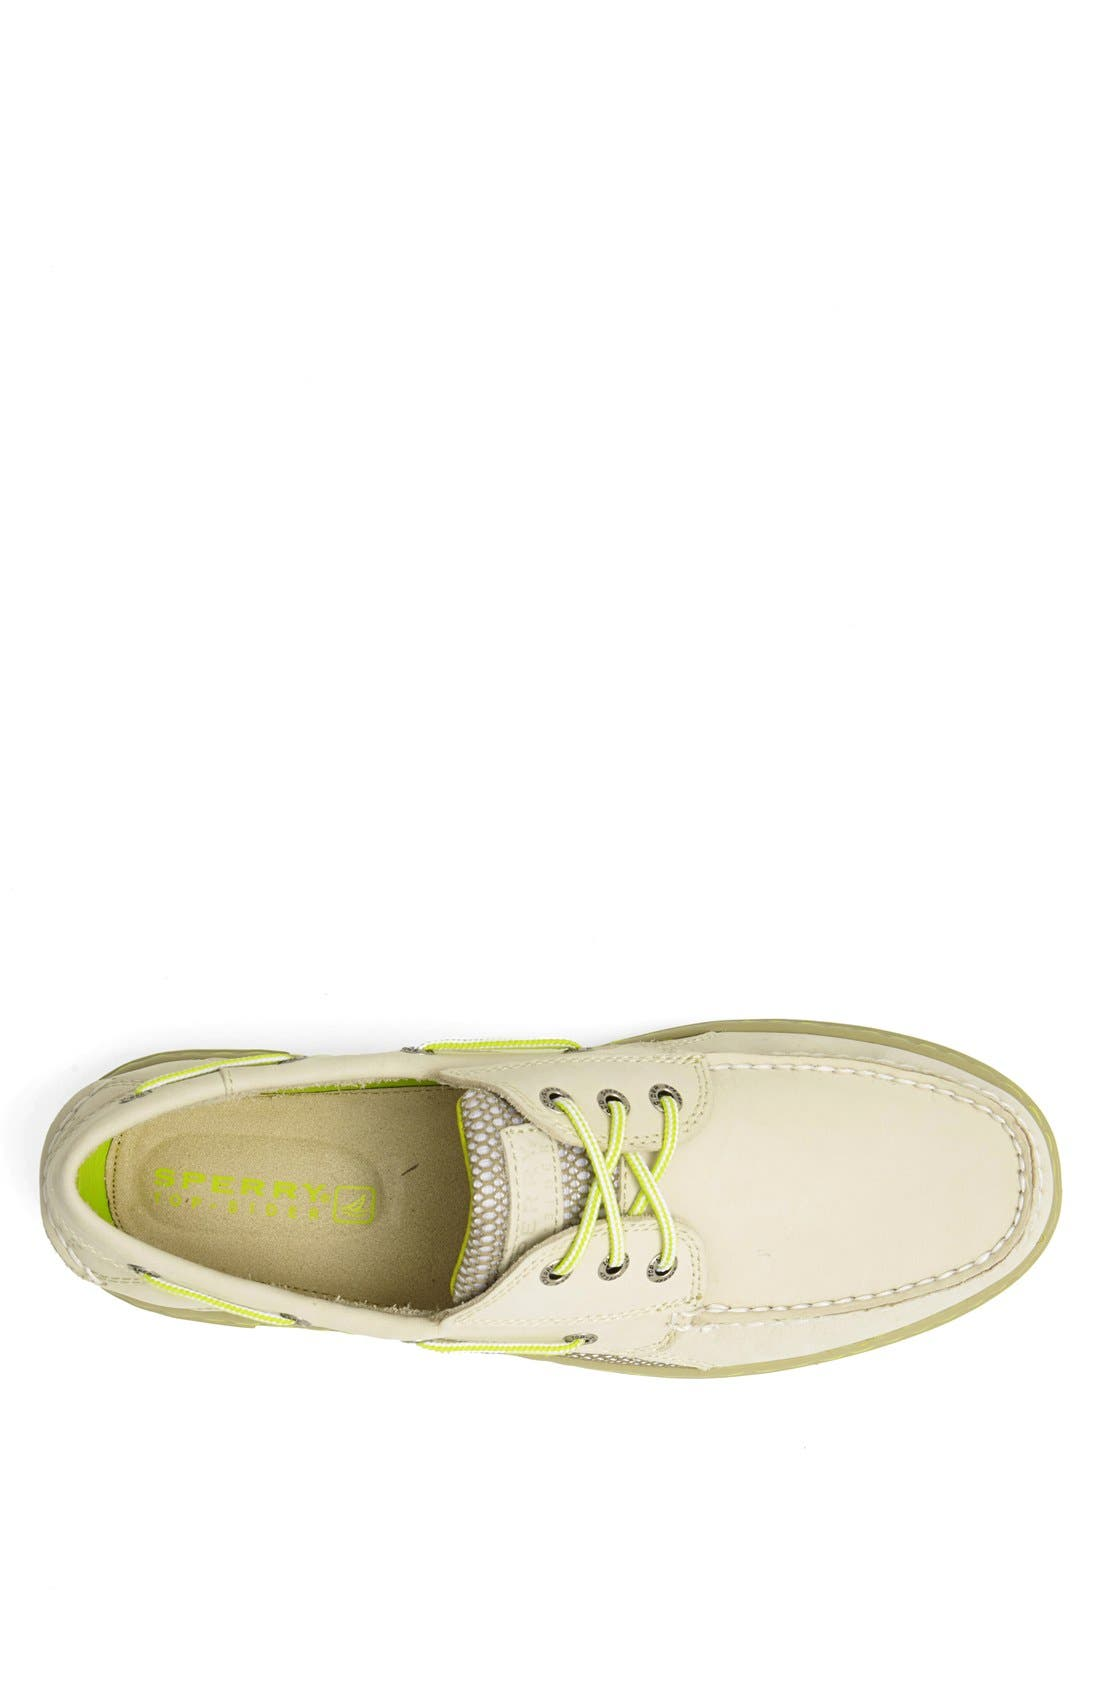 'Billfish Ultralite' Boat Shoe,                             Alternate thumbnail 28, color,